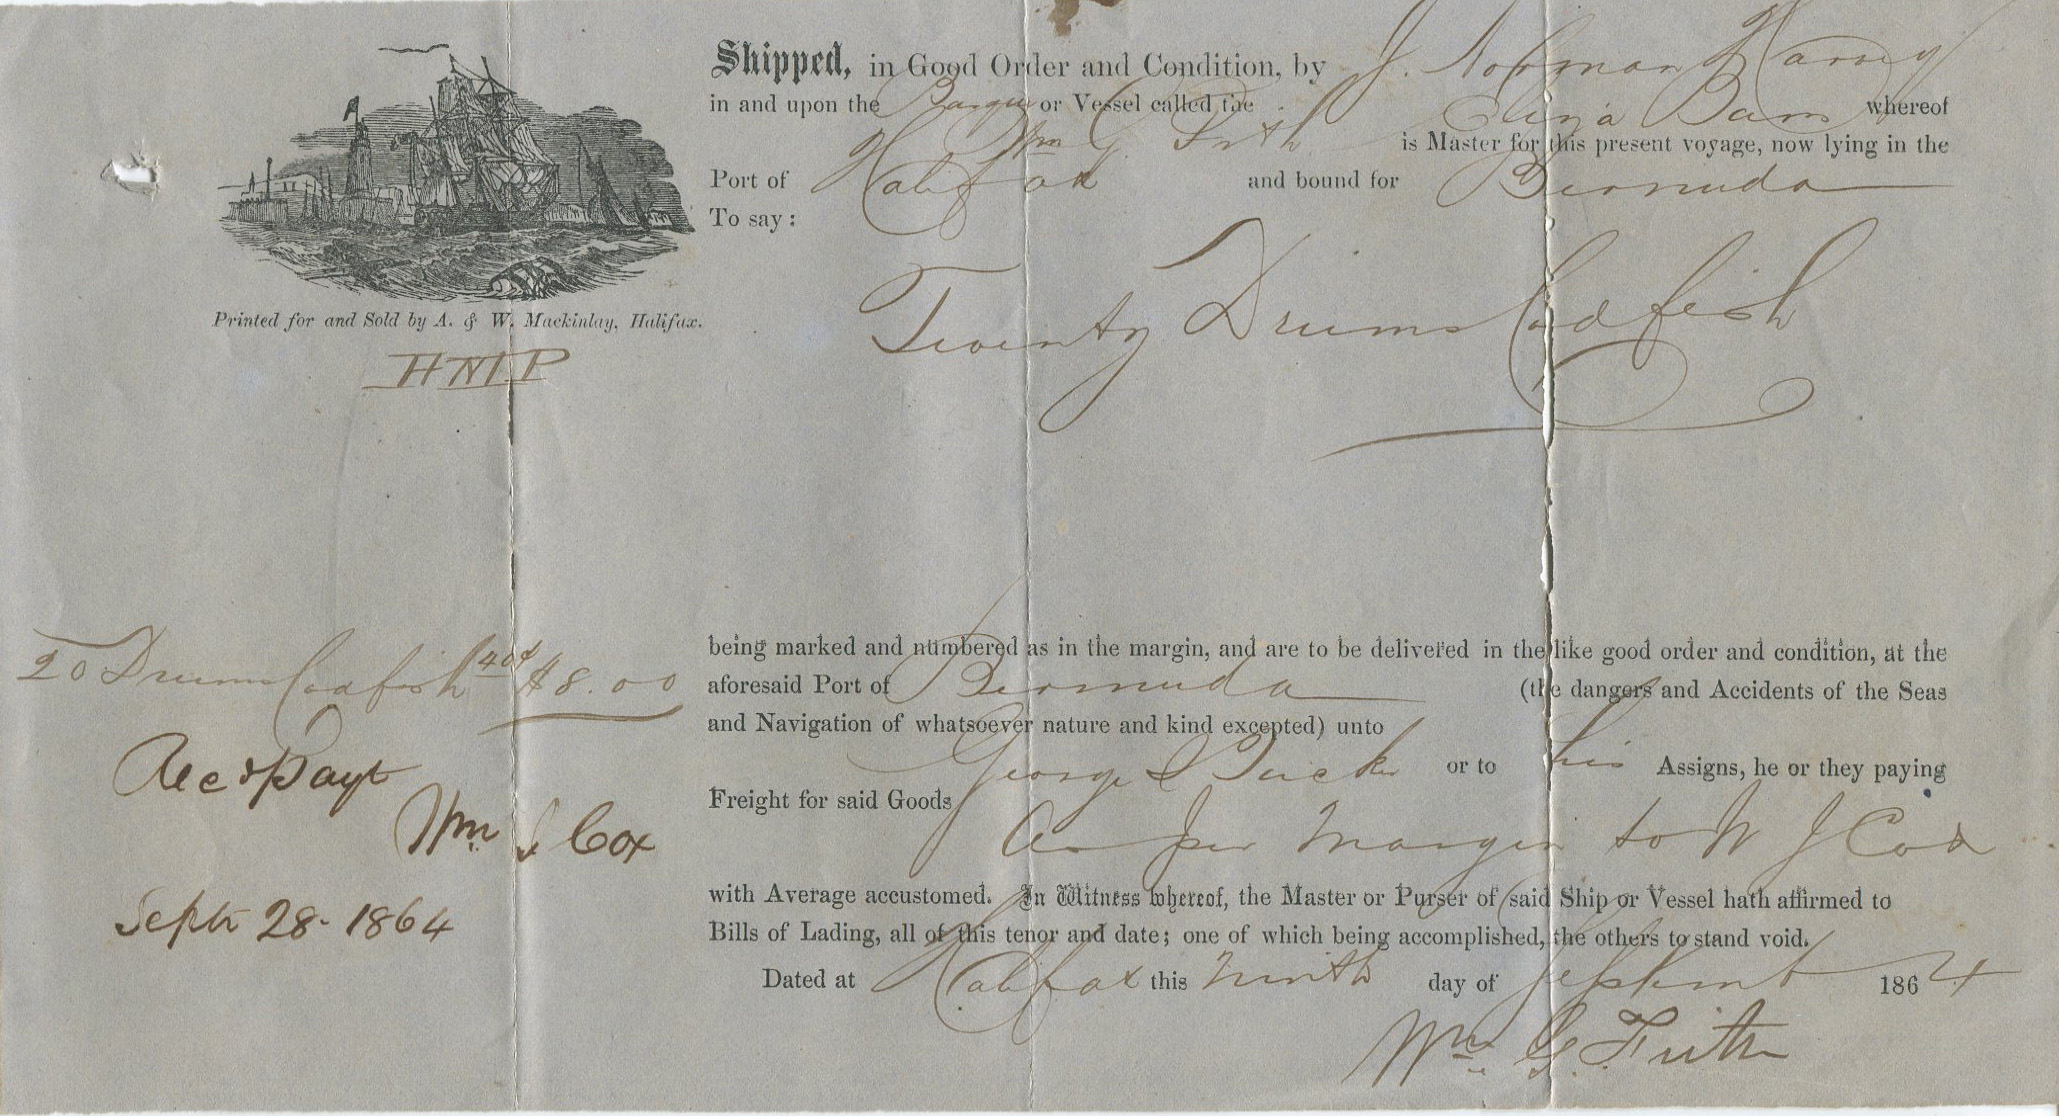 1864 Halifax Nova Scotia printed Bill of Lading for cod fish shipped to Bermuda